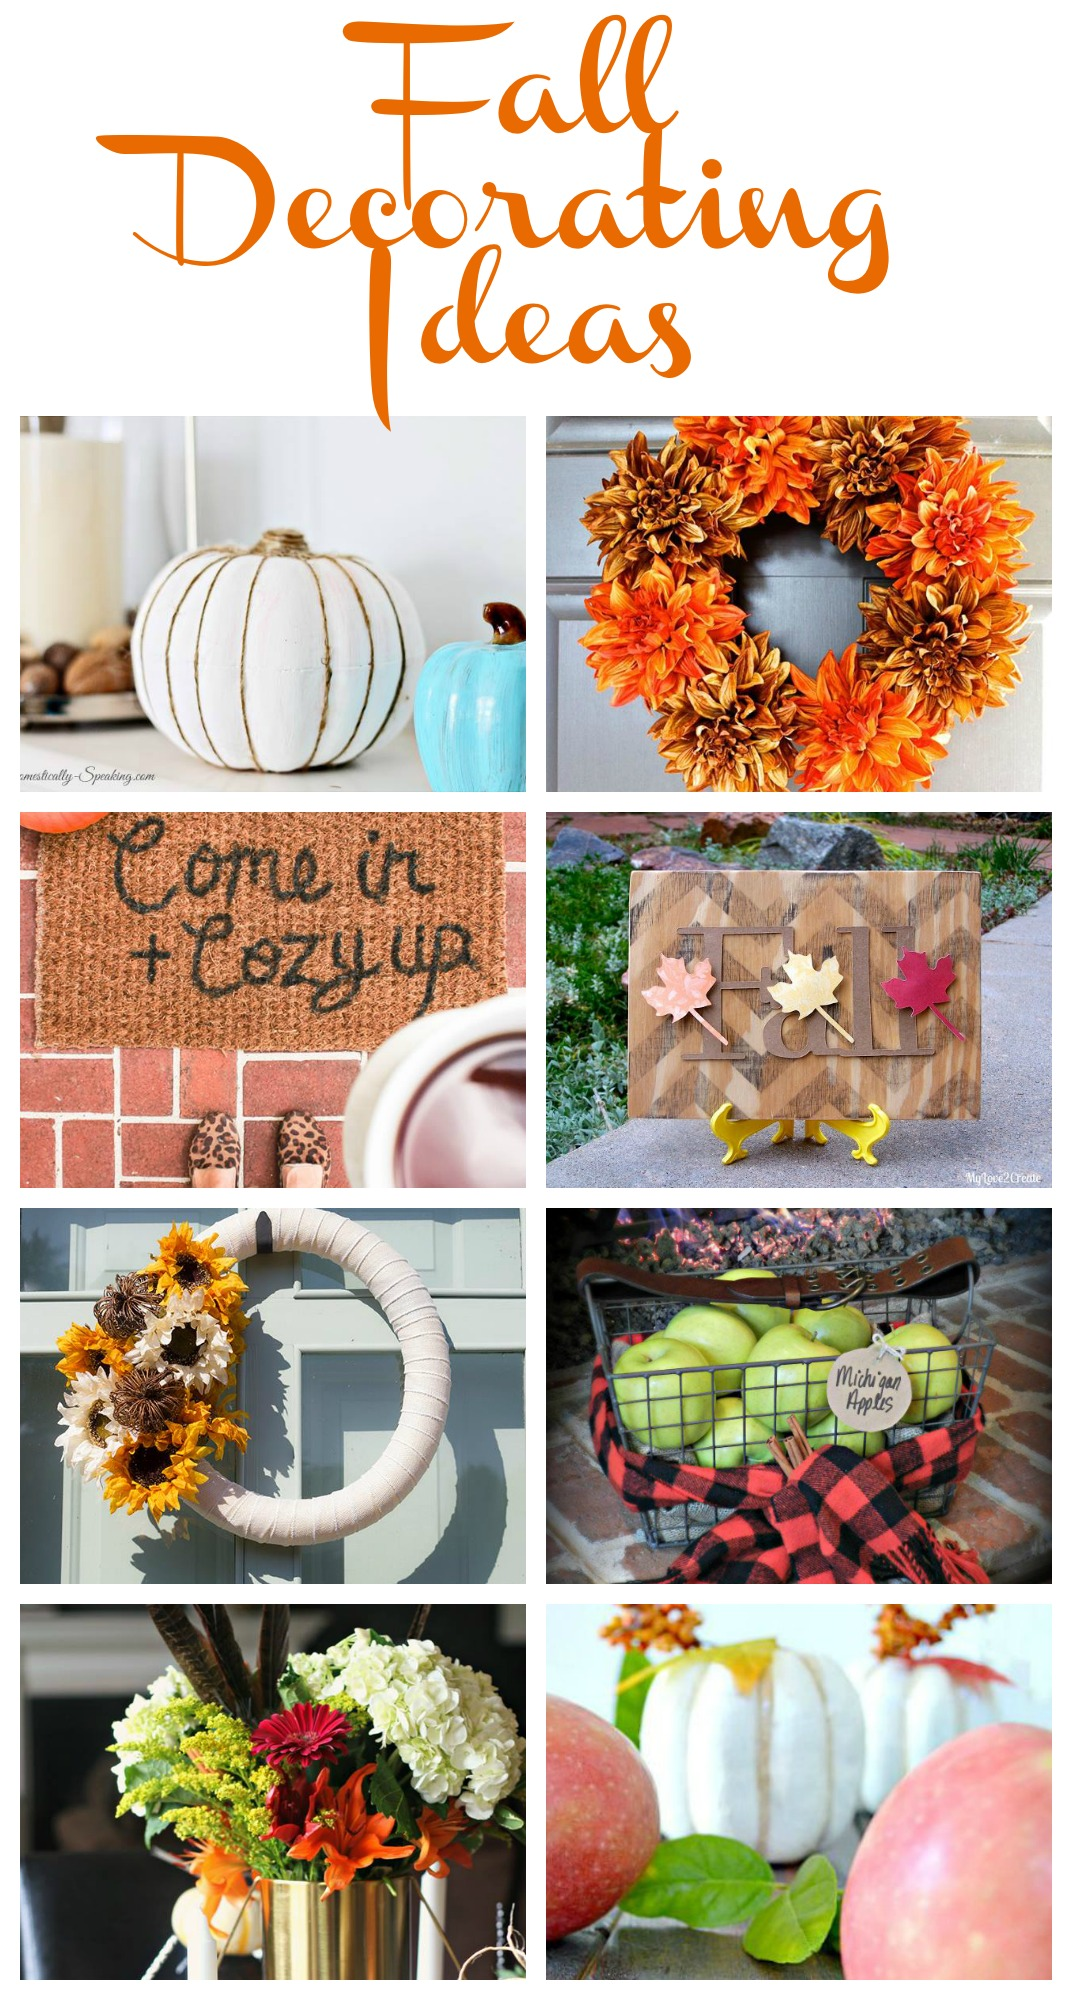 Fall Decorating Ideas - My Uncommon Slice of Suburbia